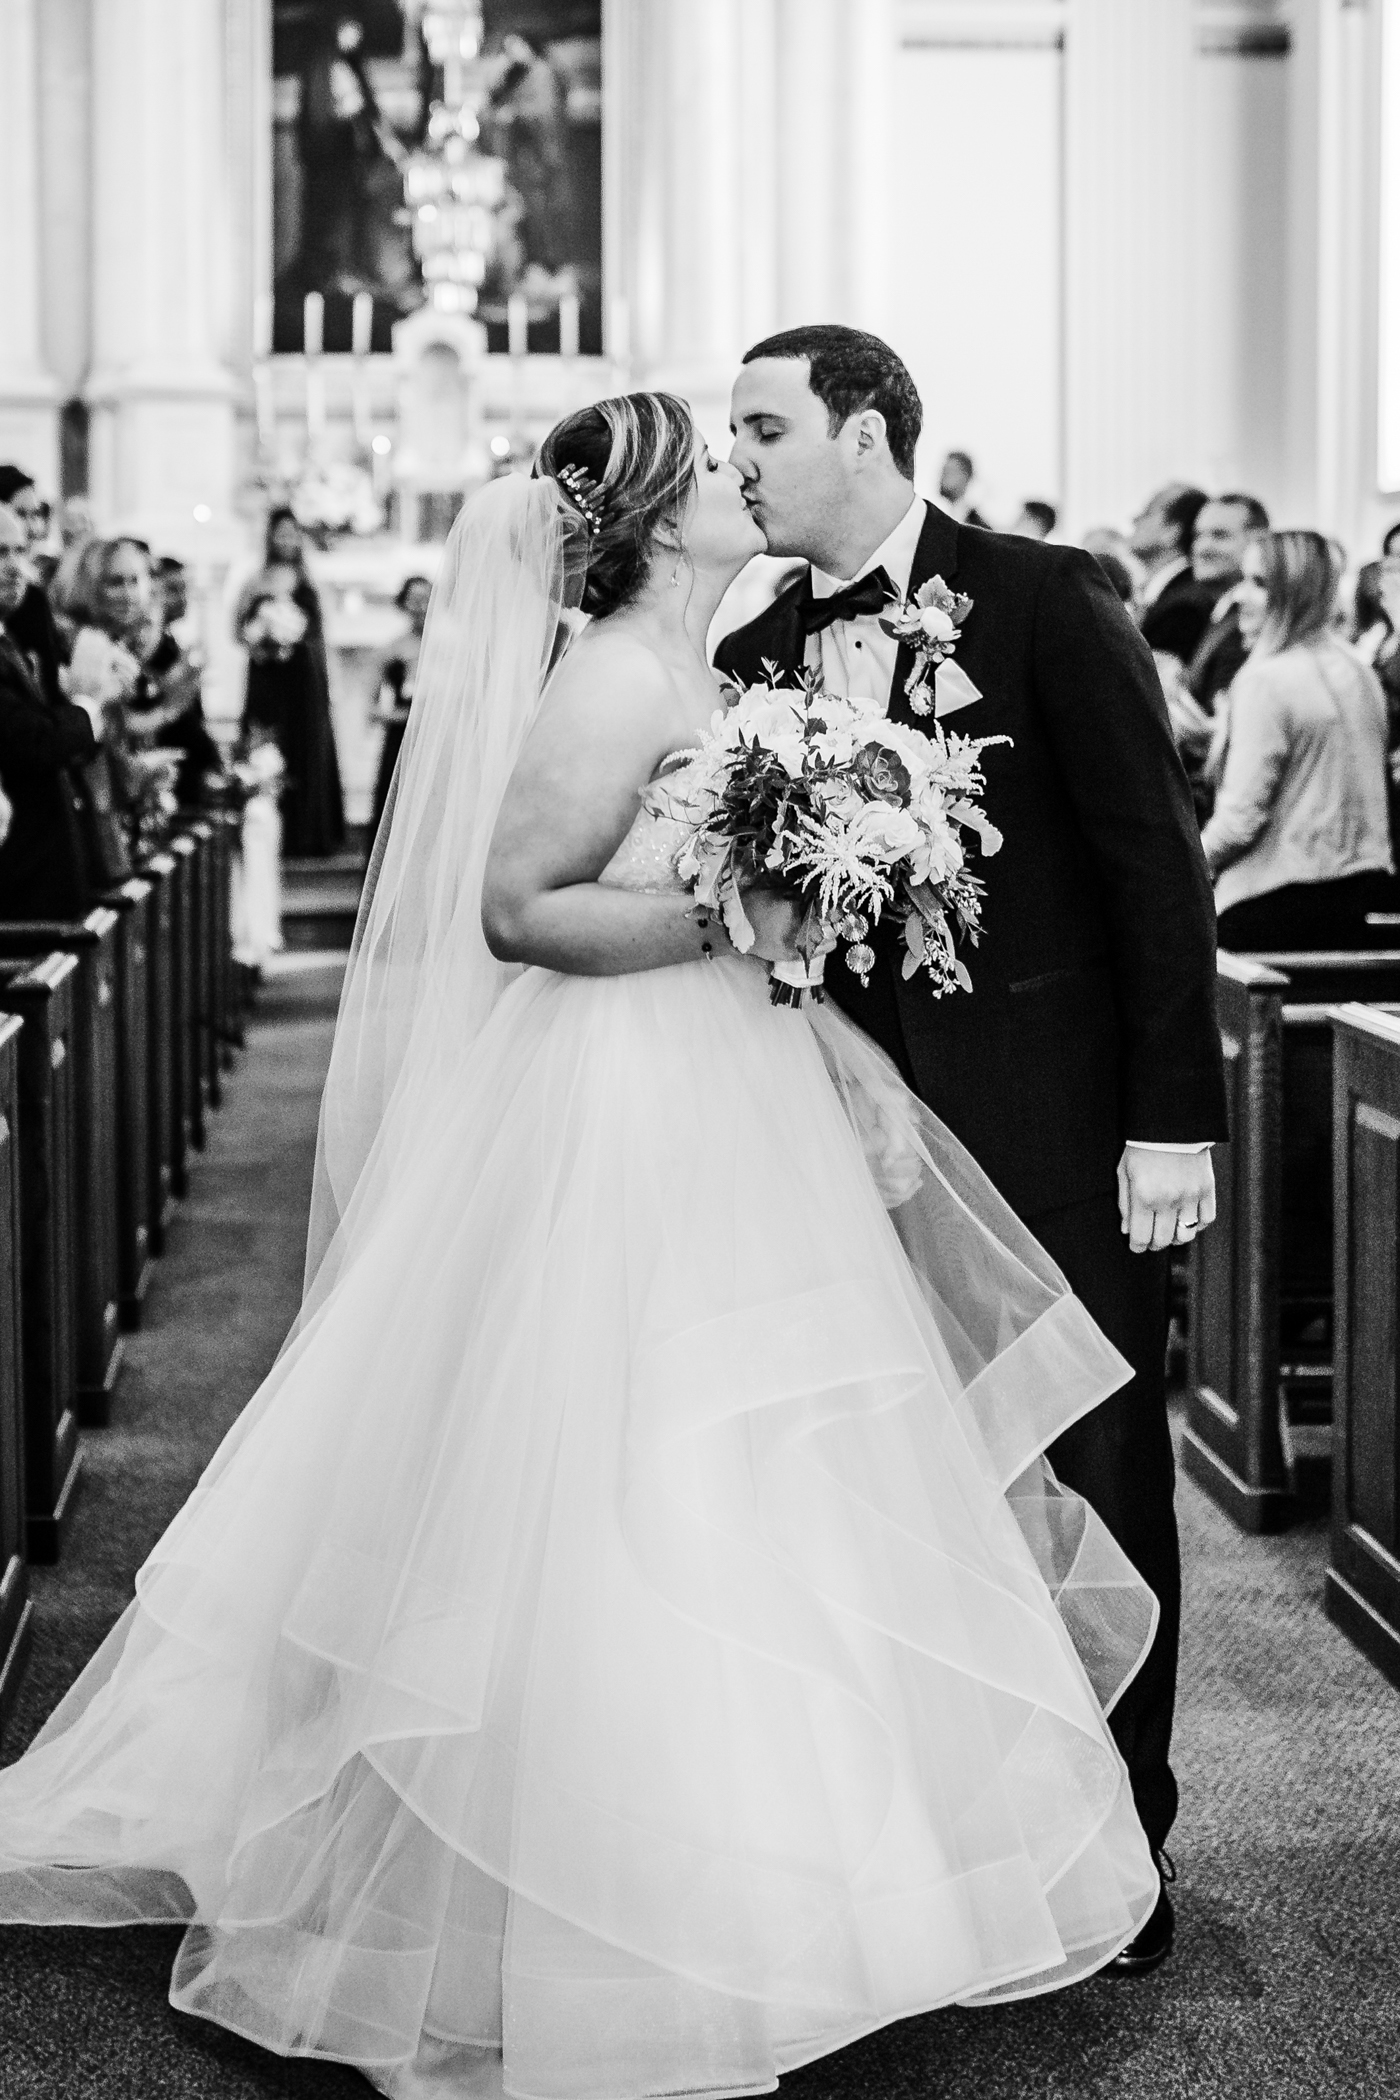 bride and groom kiss as they come down the aisle - catholic wedding ceremony inspo